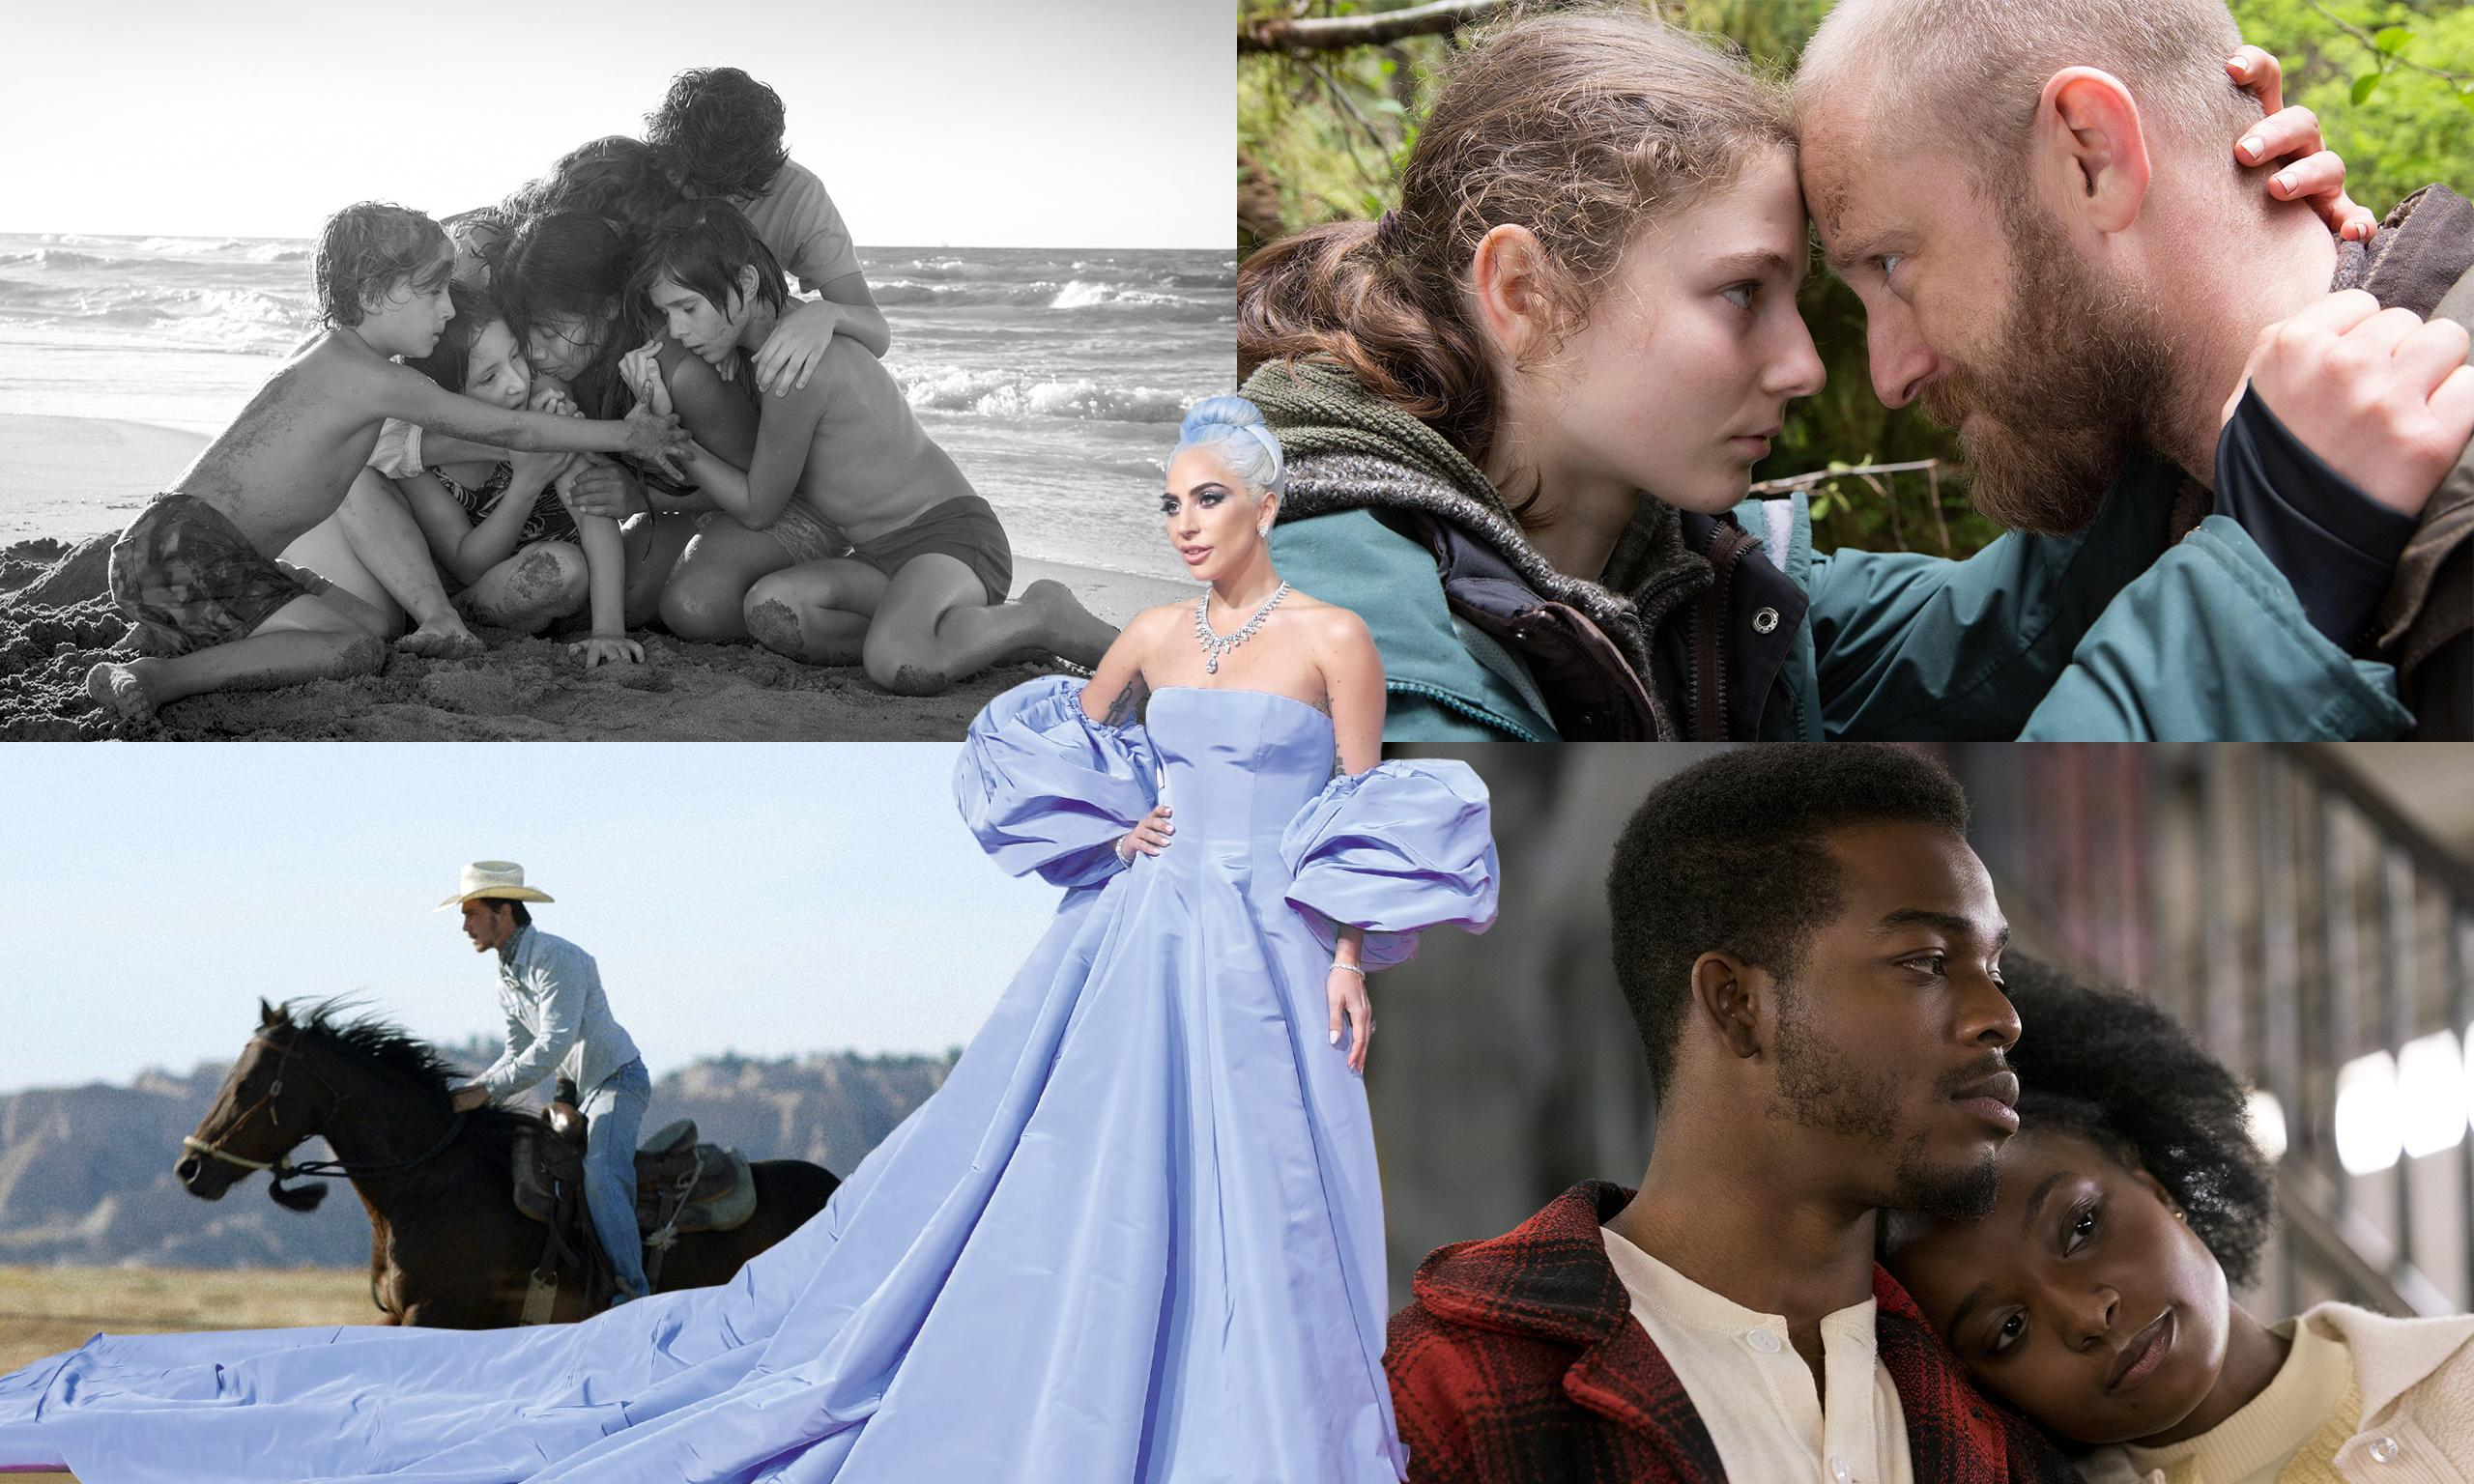 My Oscar goes to... Our film critics reveal their personal shortlists